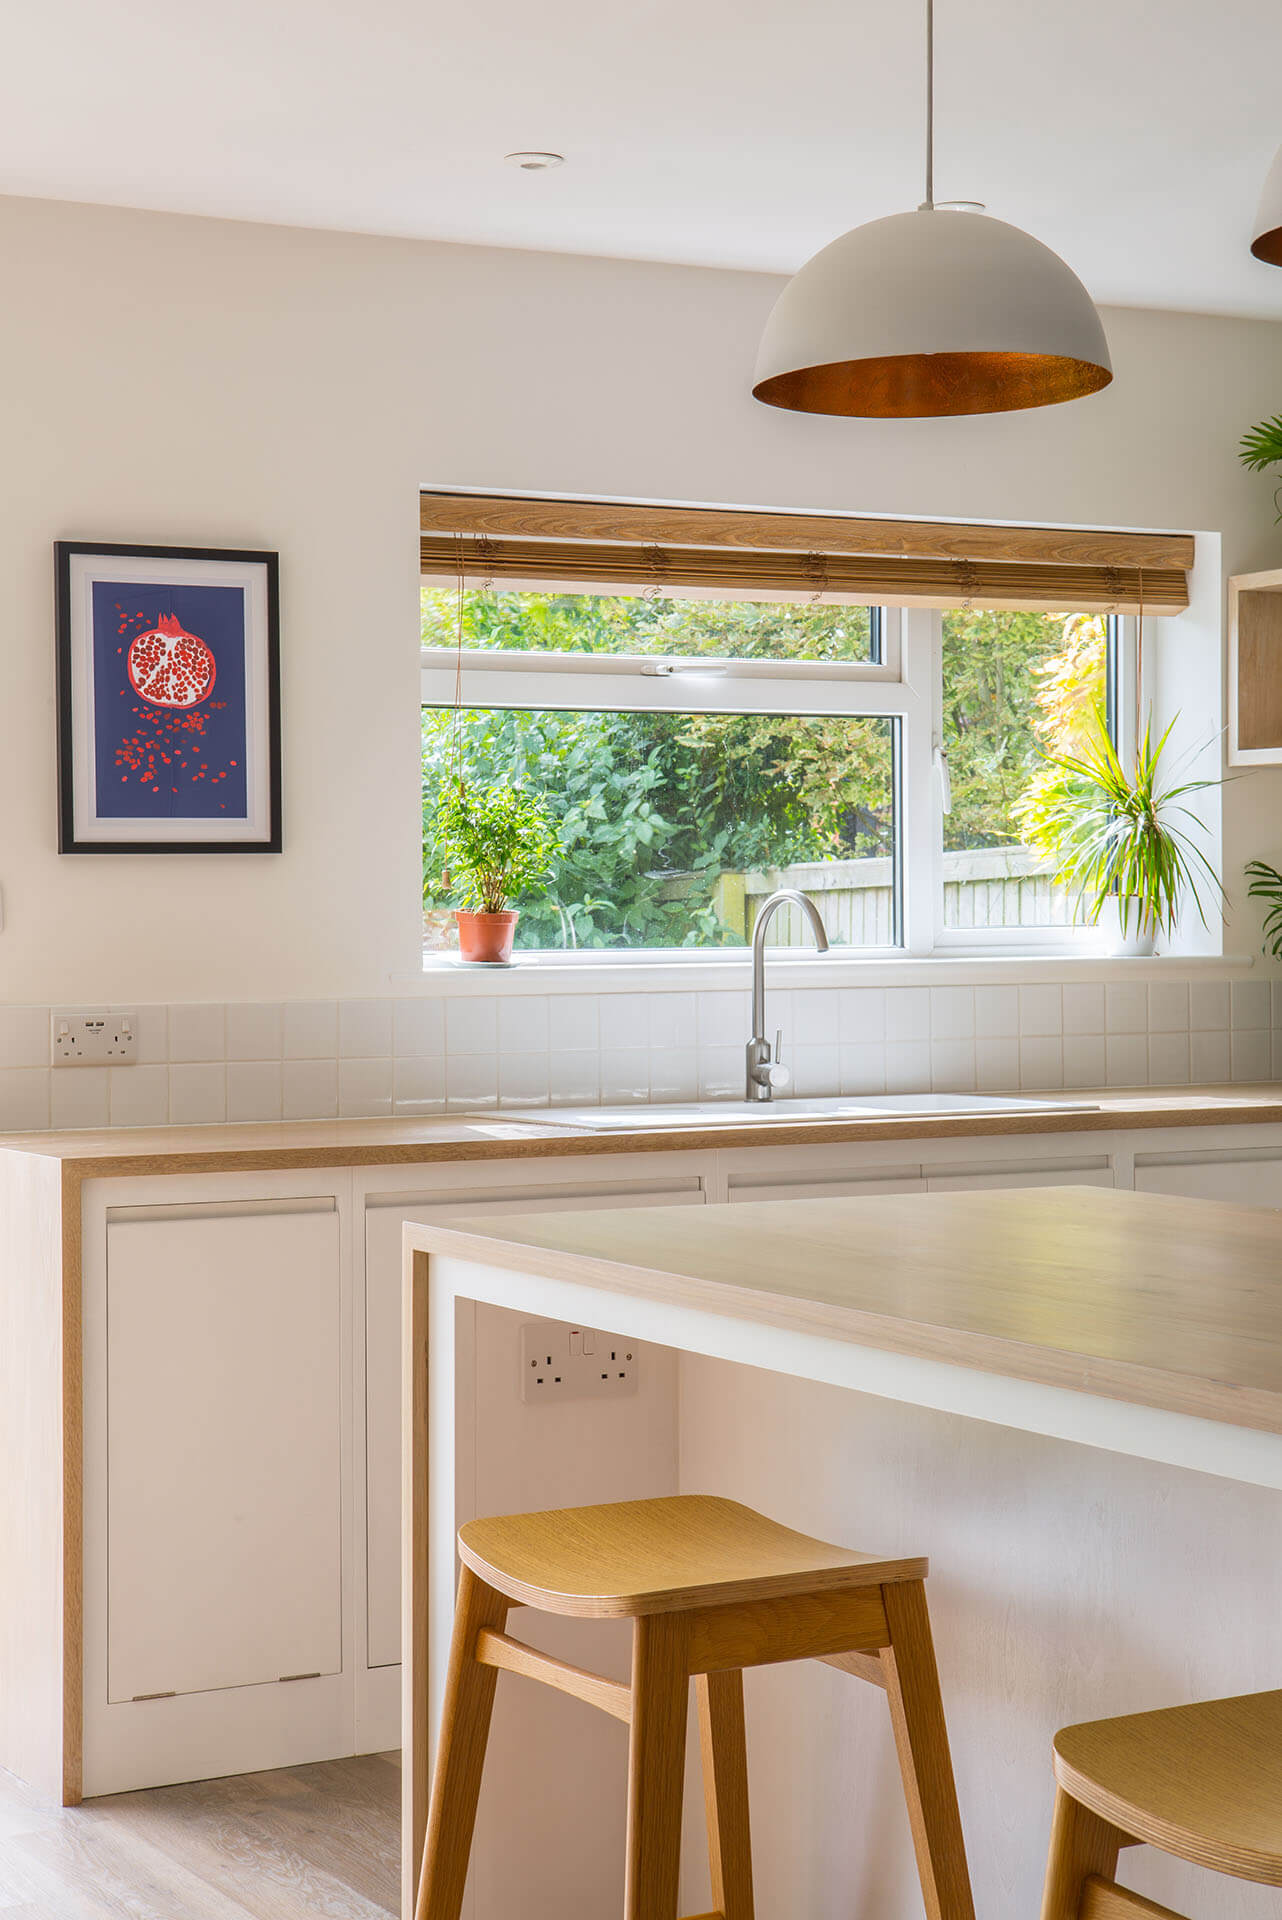 Minimalist contemporary white kitchen with breakfast bar and Oak worktop with waterfall ends